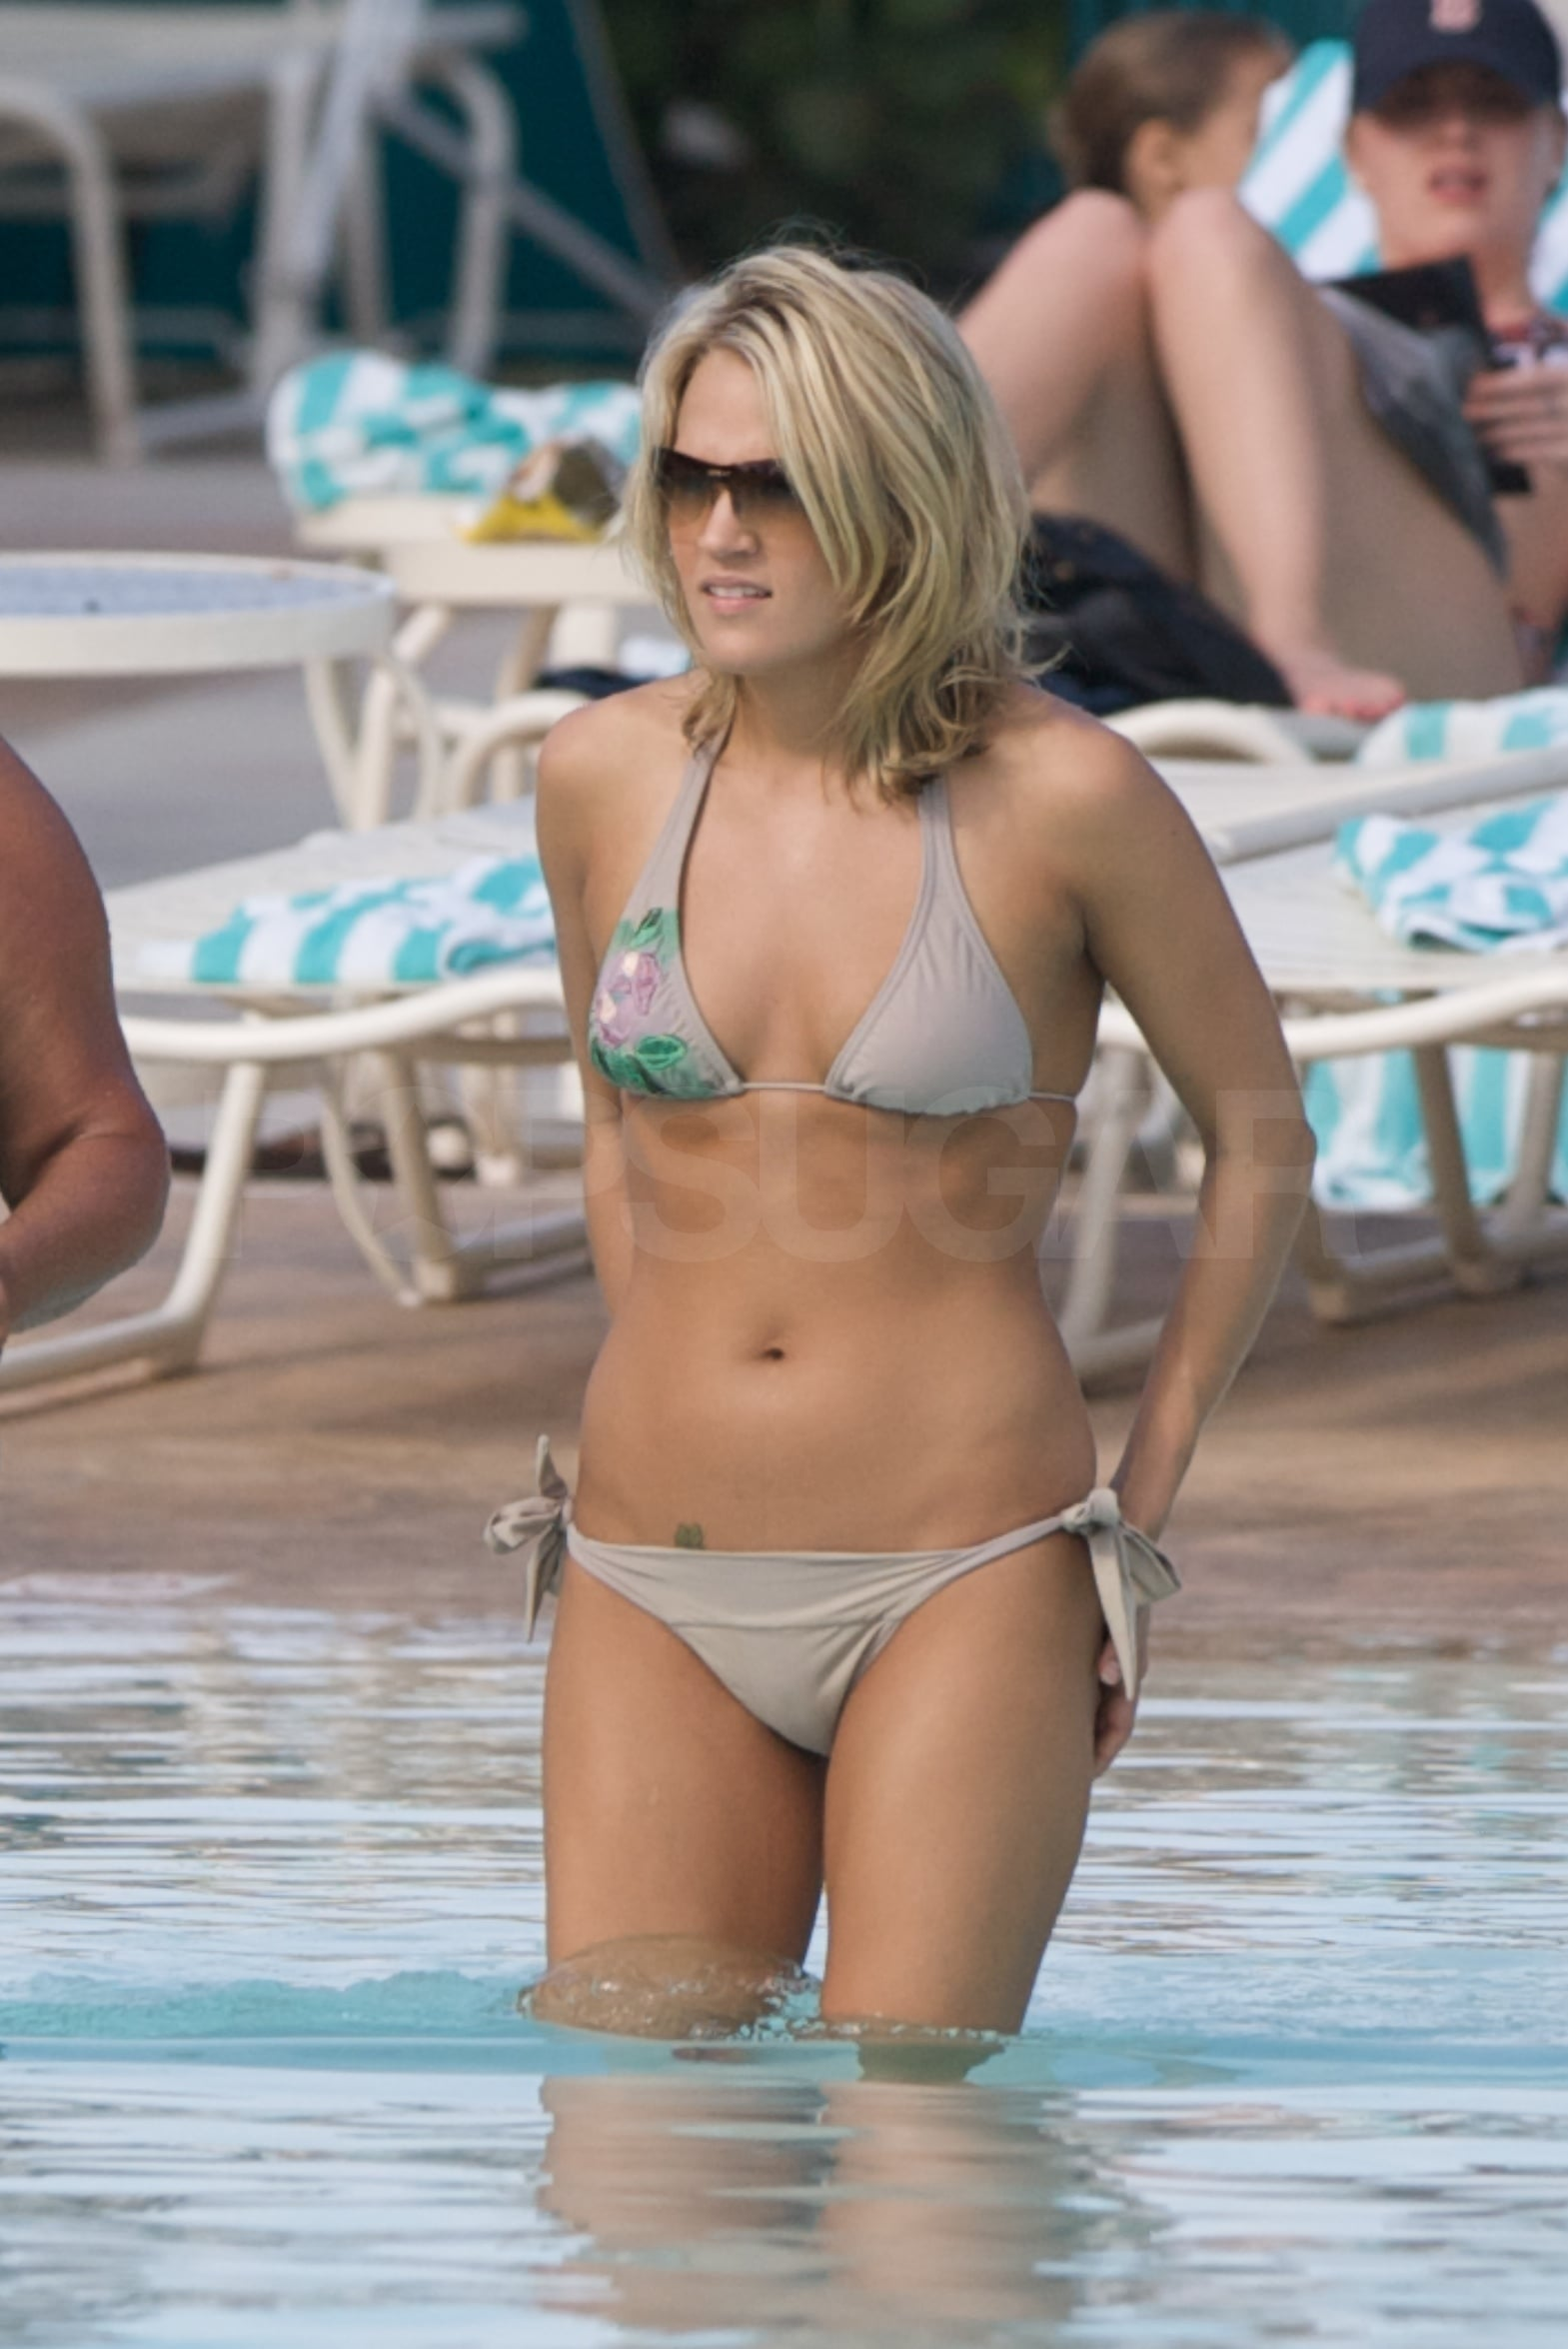 Photos of Carrie Underwood on Vacation in a Bikini ...